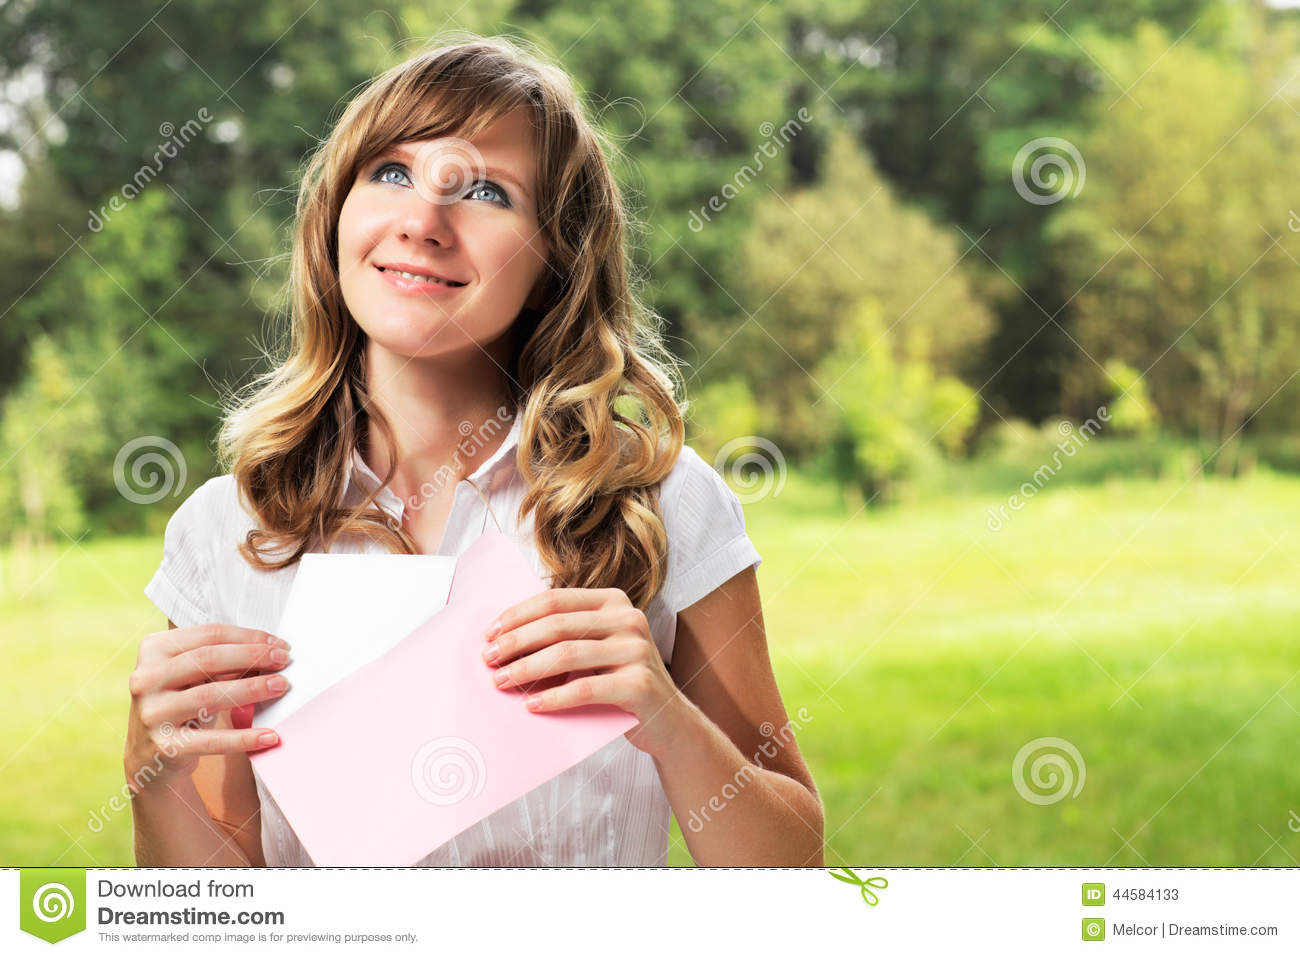 Young caucasian woman standing on blurred green summer background. Holding a blank letter in pink envelope. Letter and envelope co